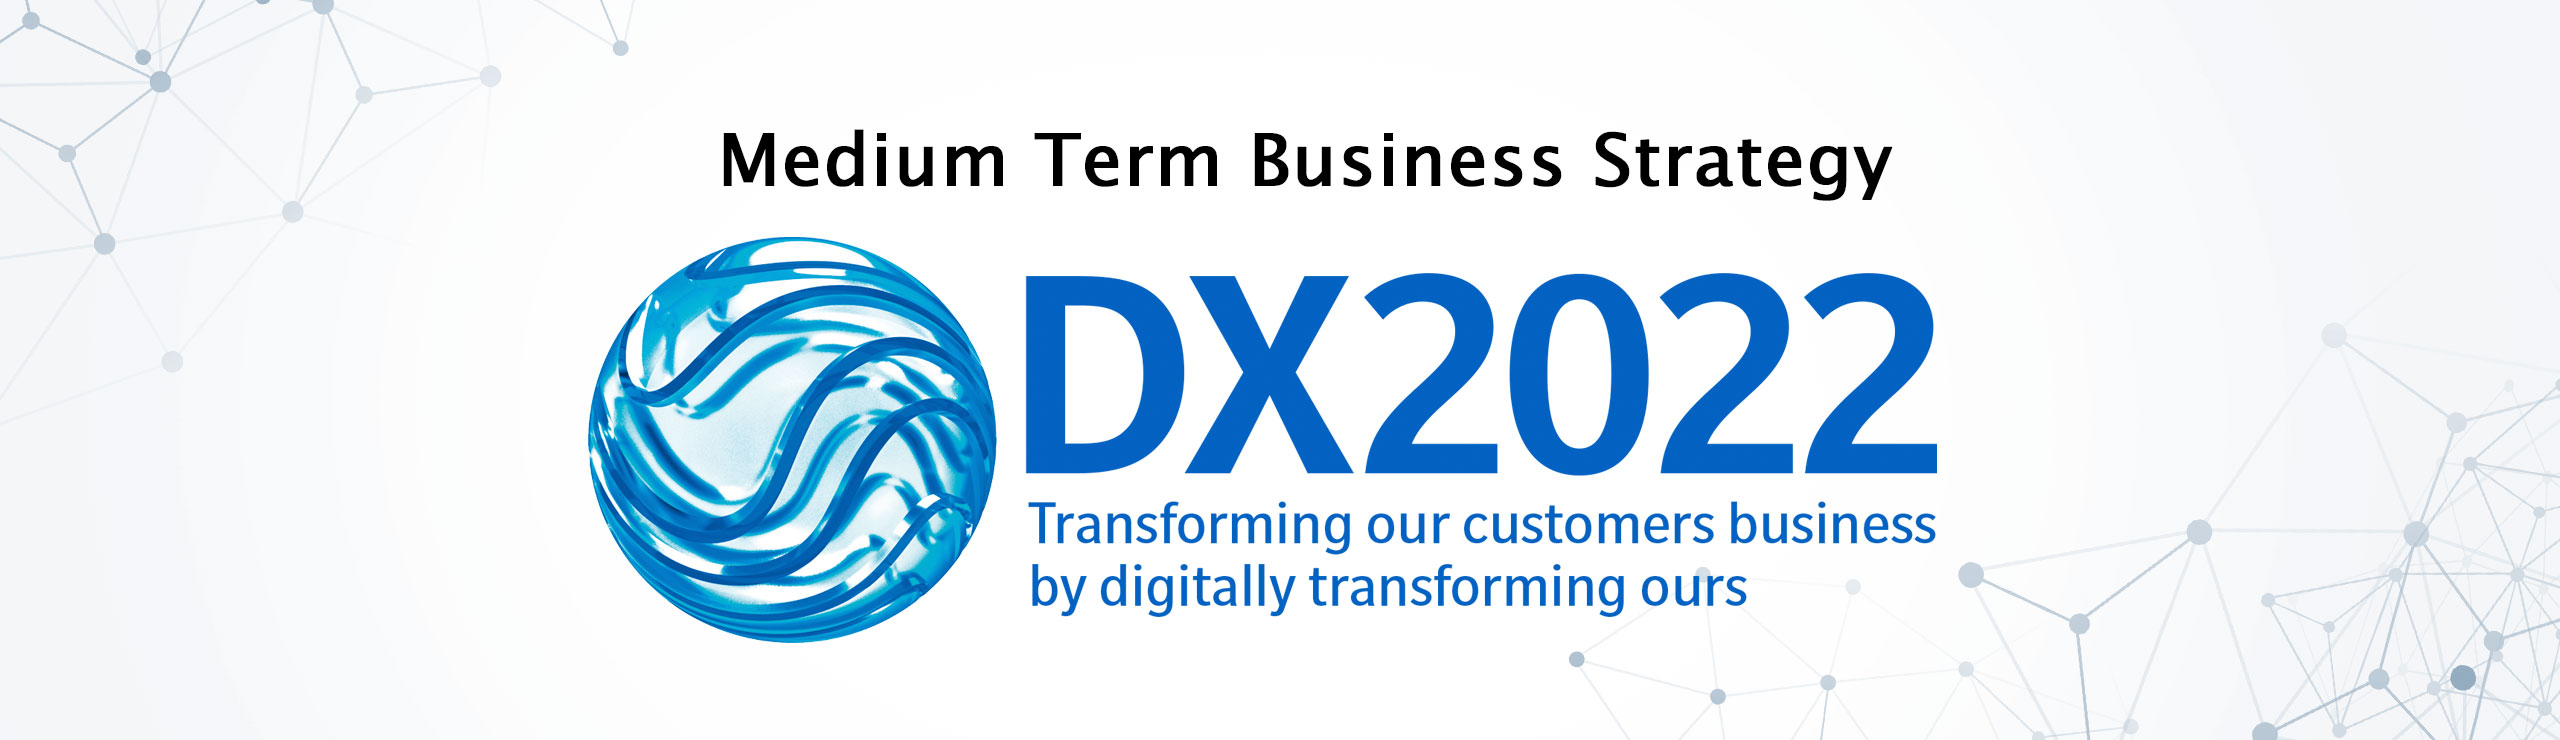 Transforming our customers business by digitally transforming ours